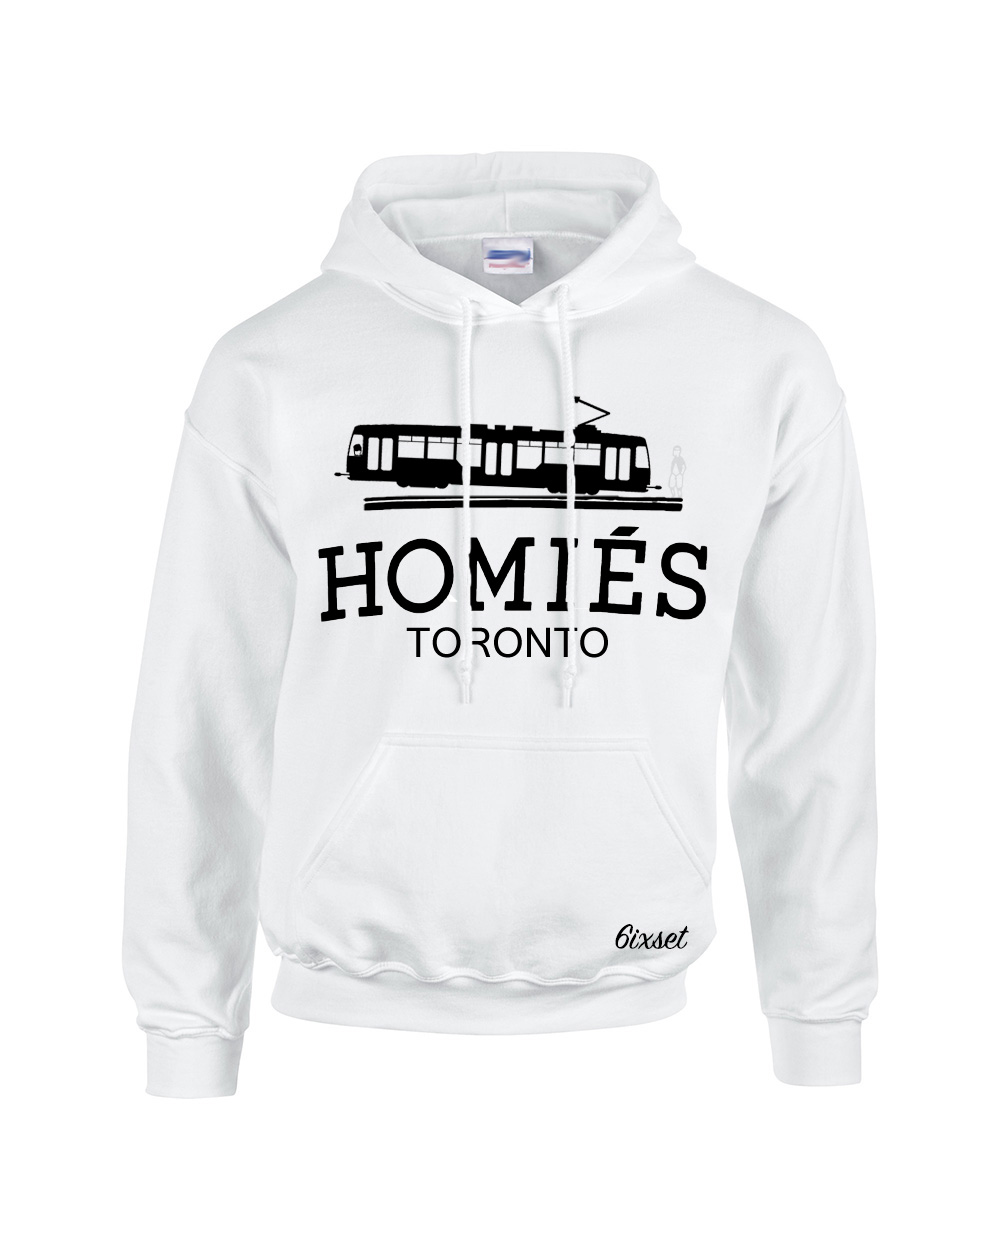 Excellent Homies (Hermes) Toronto Hooded Sweatshirt by 6ixset AT94